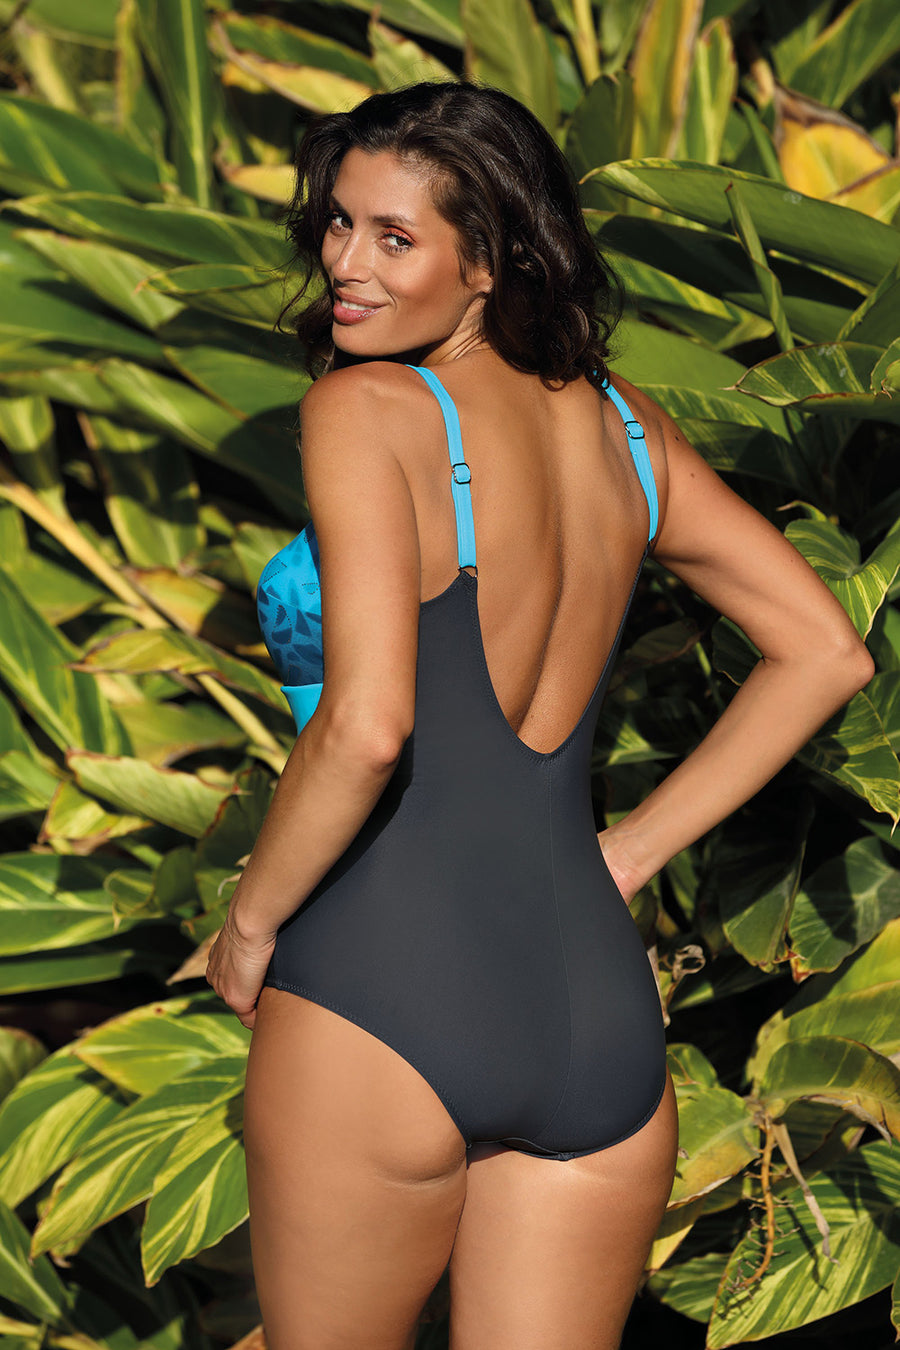 Swimsuit one piece model 143731 Marko